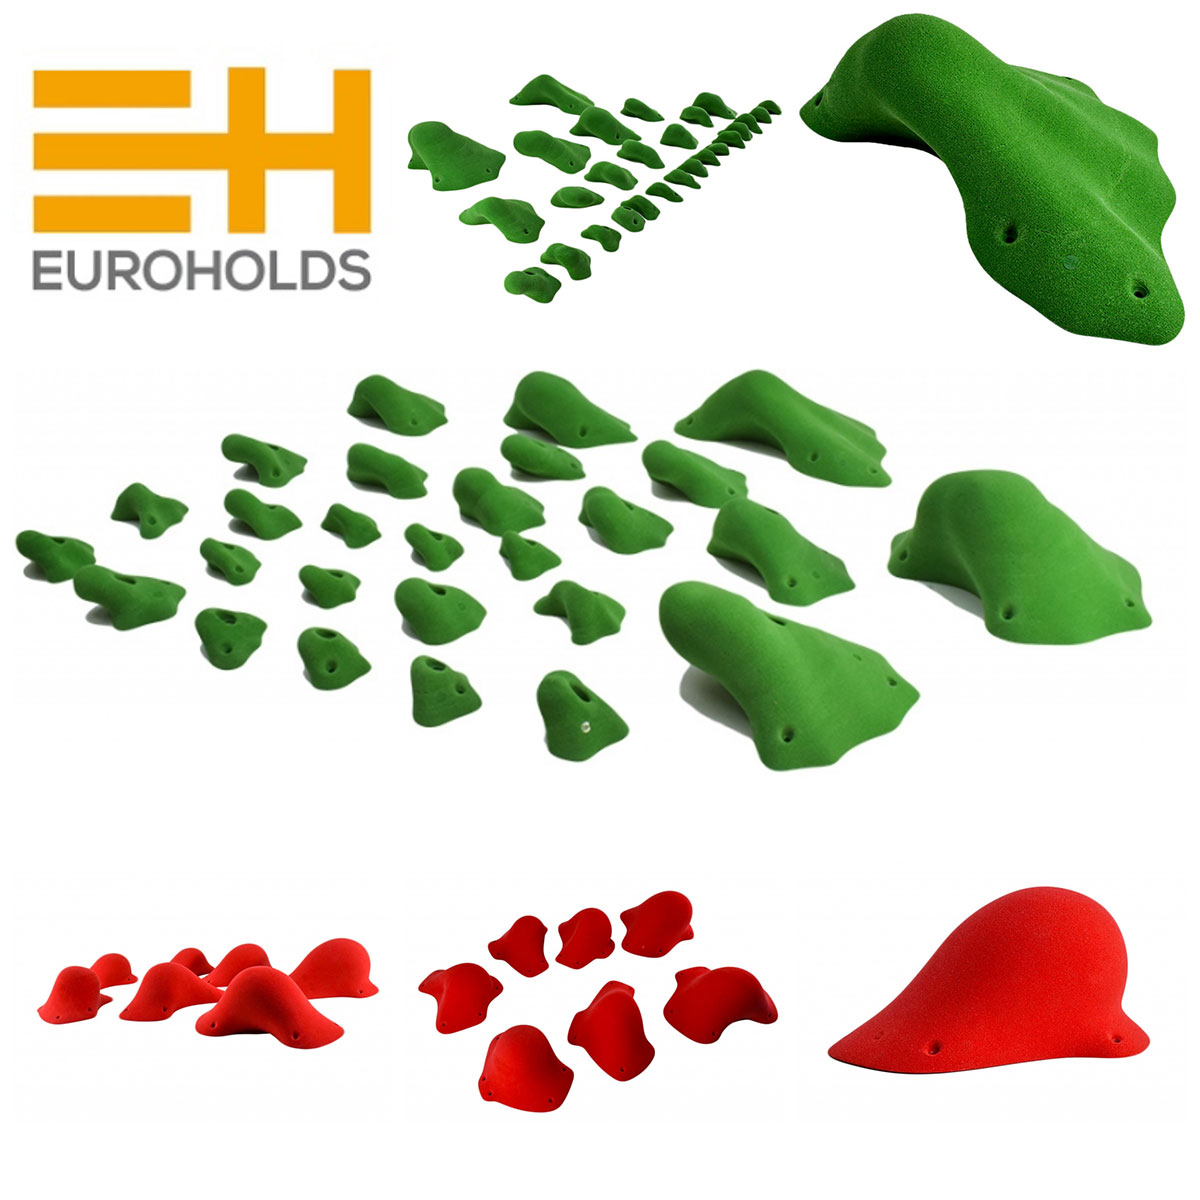 Grips from Euroholds with the new Fibertech technology